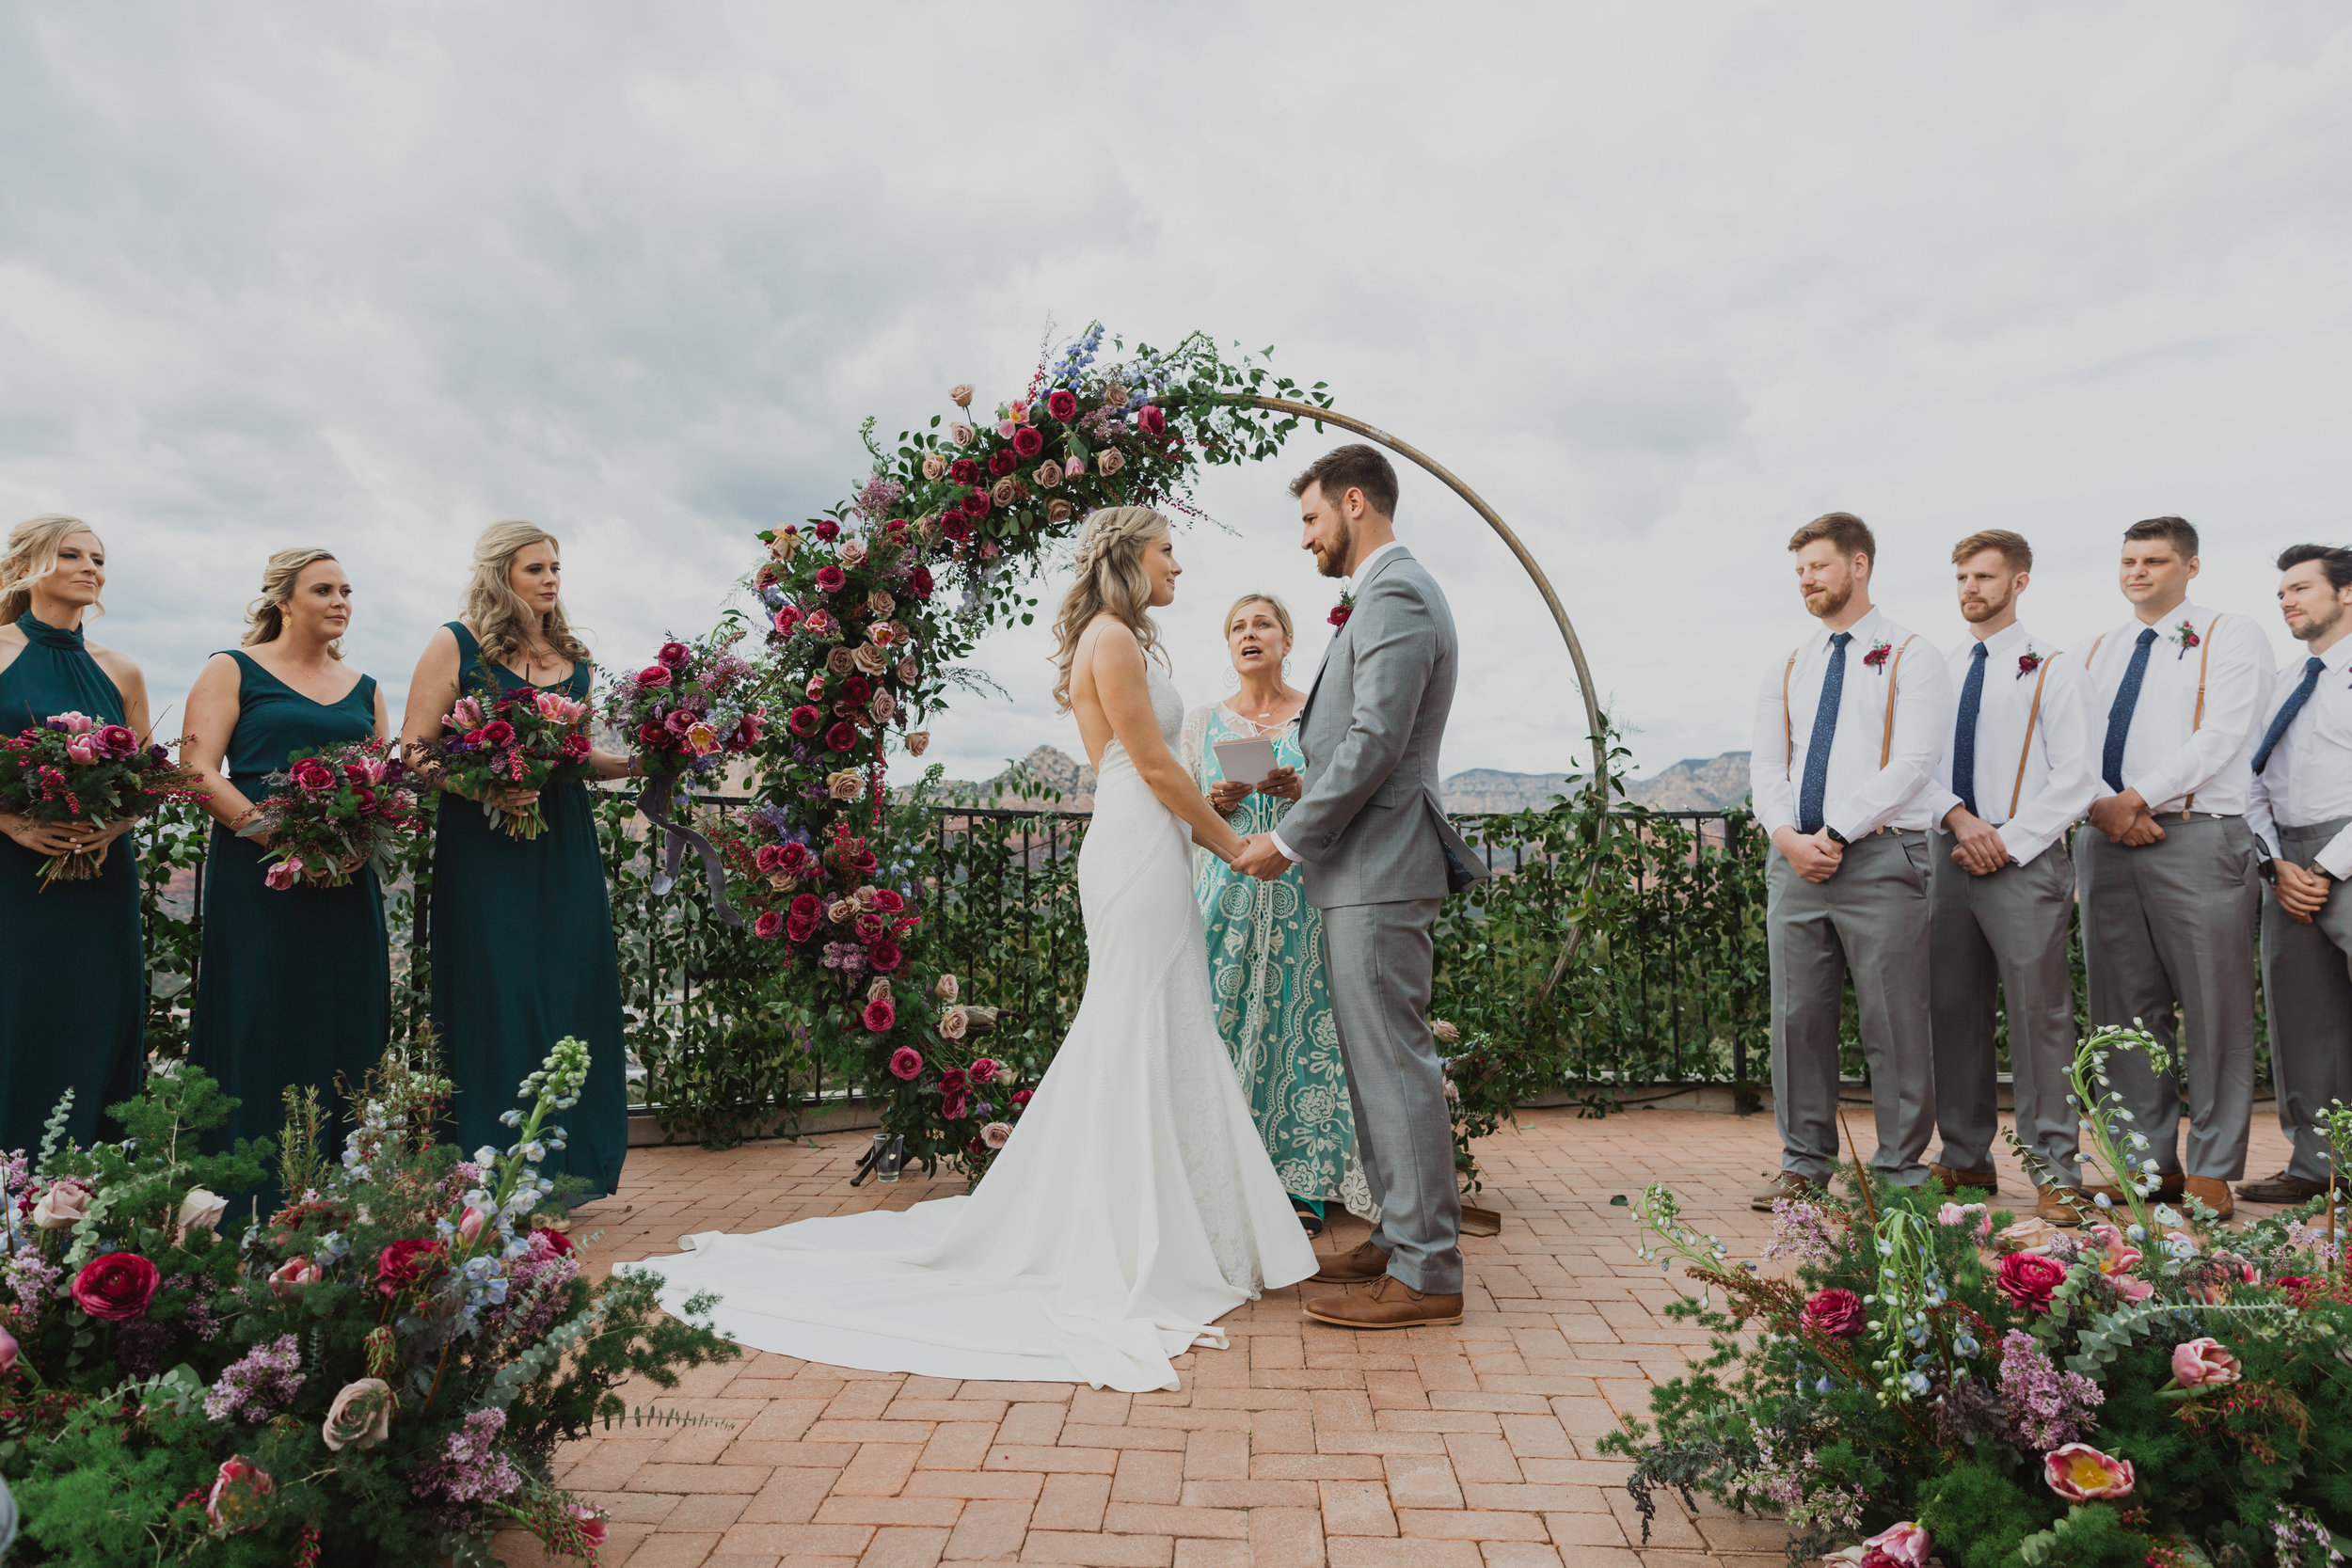 Stars and Moon Inspired Wedding in the Red Rocks of Sedona - Arizona Florist serving Phoenix scottsdale Mesa chandler Flagstaff Prescott - Purple and Blue ceremony inspiration with circle arch